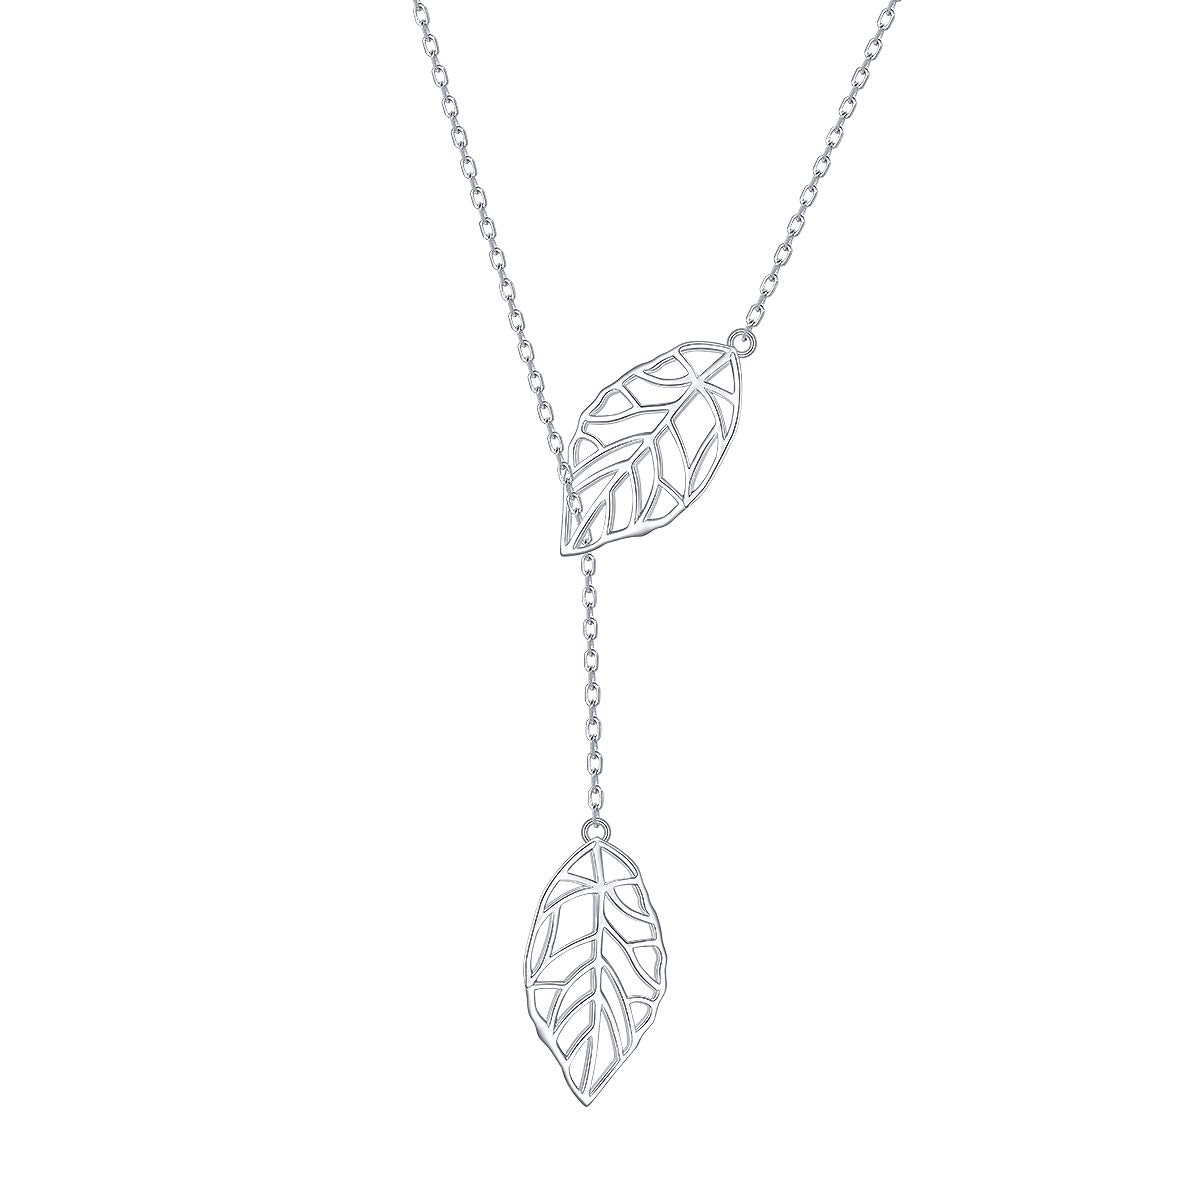 Long Necklace Sterling Silver Leaf Larait Bar Y Lariat Long Chain Drop Adjustable Necklace Gift for Her, 30'' by SILVER MOUNTAIN